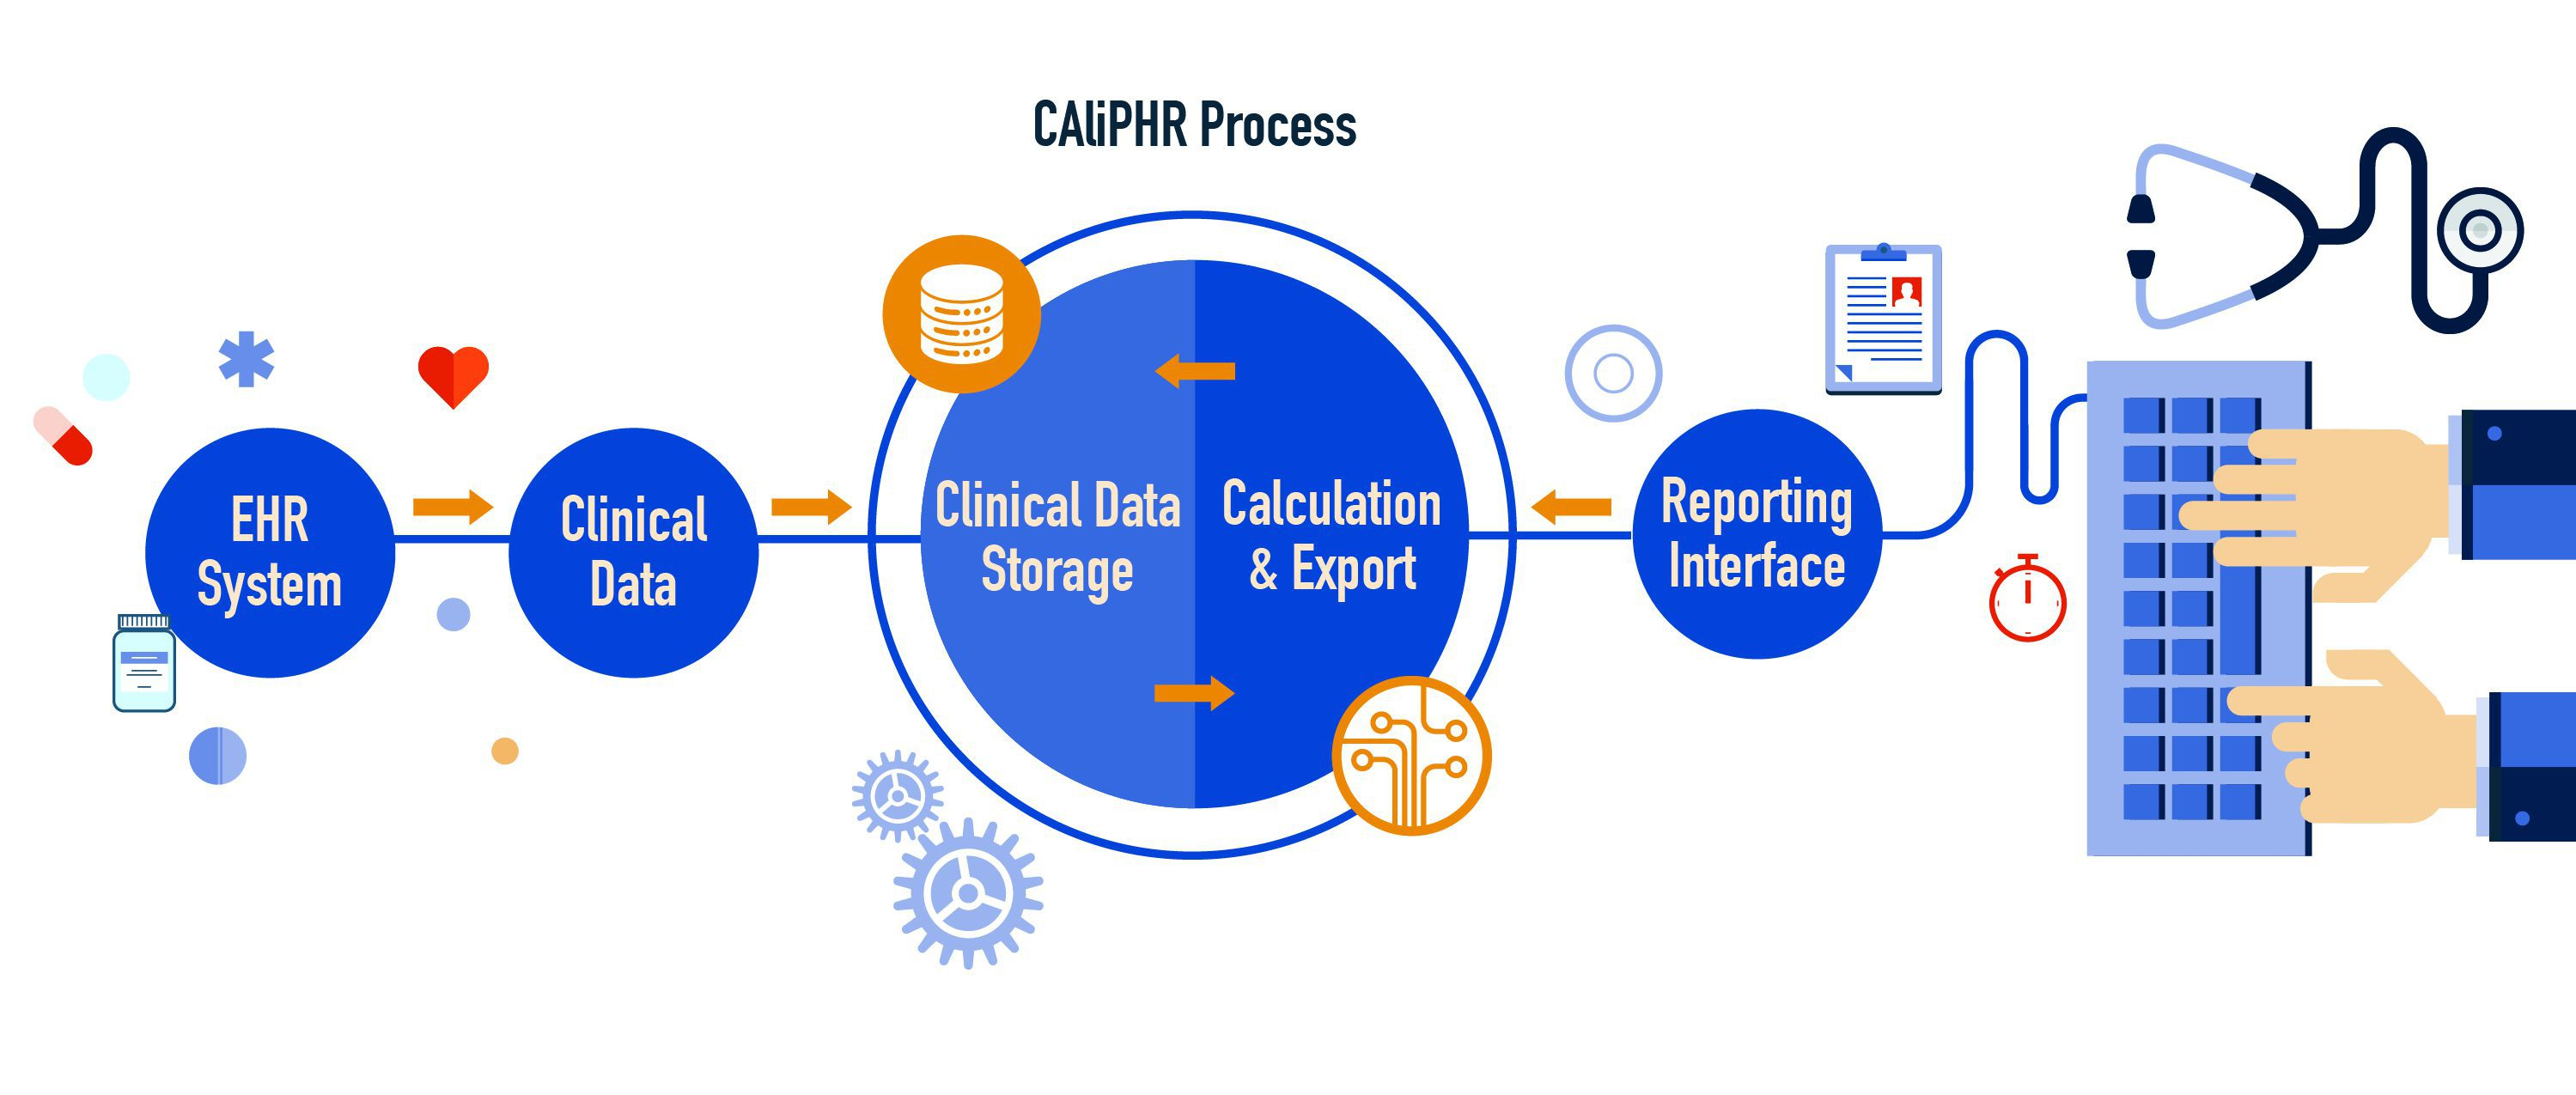 Cqm Aligned Population Health Reporting Caliphr Tool Crisp